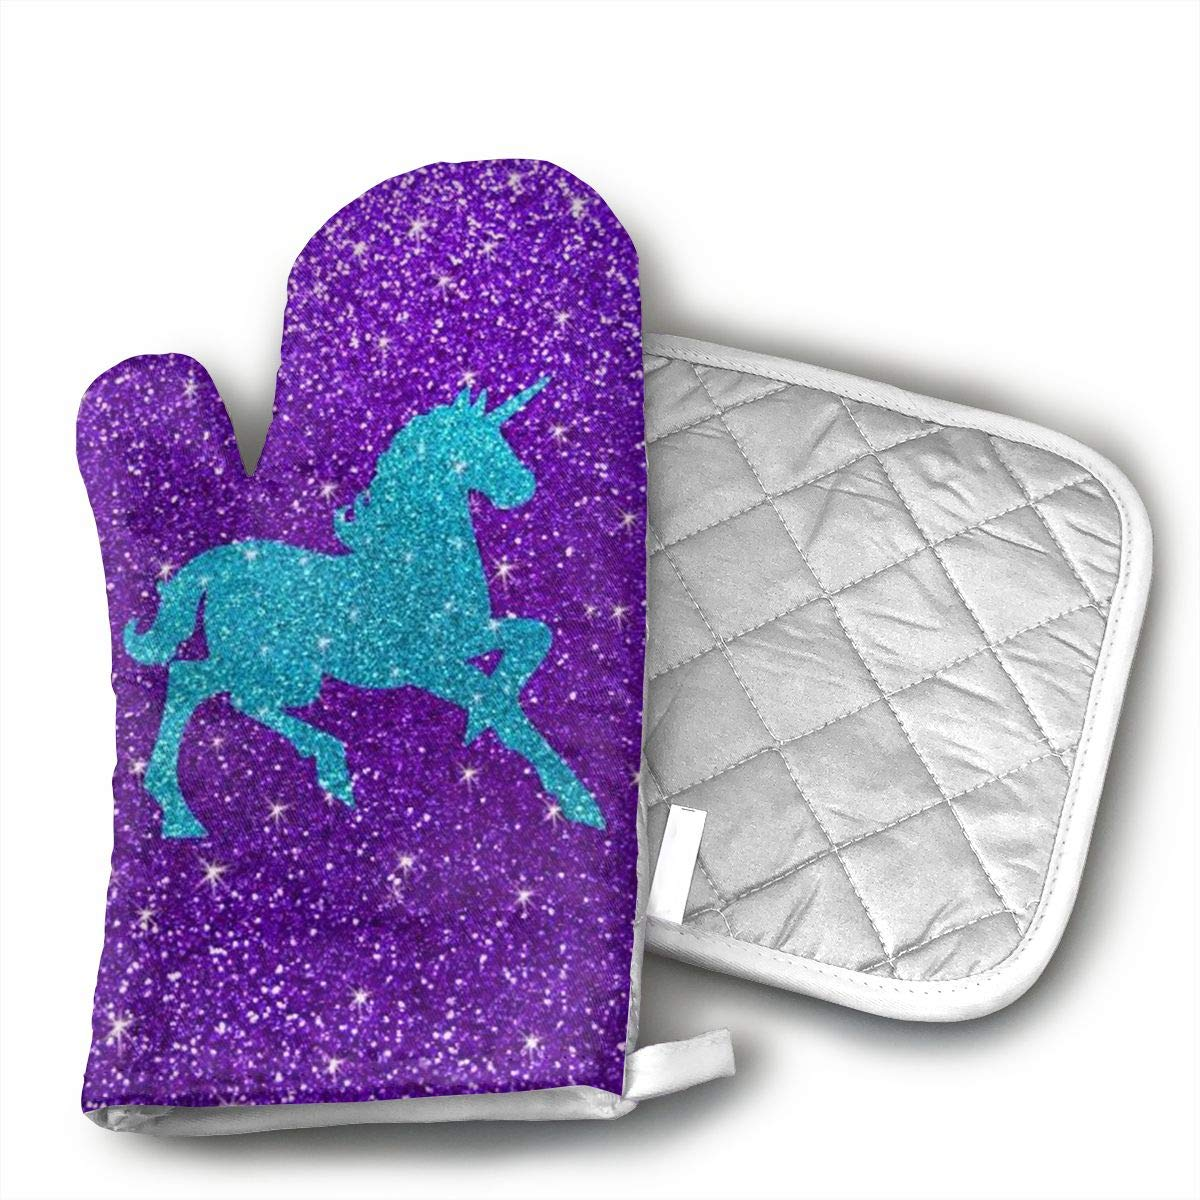 Xayeu Glitter Unicorn Oven Mitts for Kitchen Heat Resistant, Oven Gloves for BBQ Cooking Baking, Grilling,